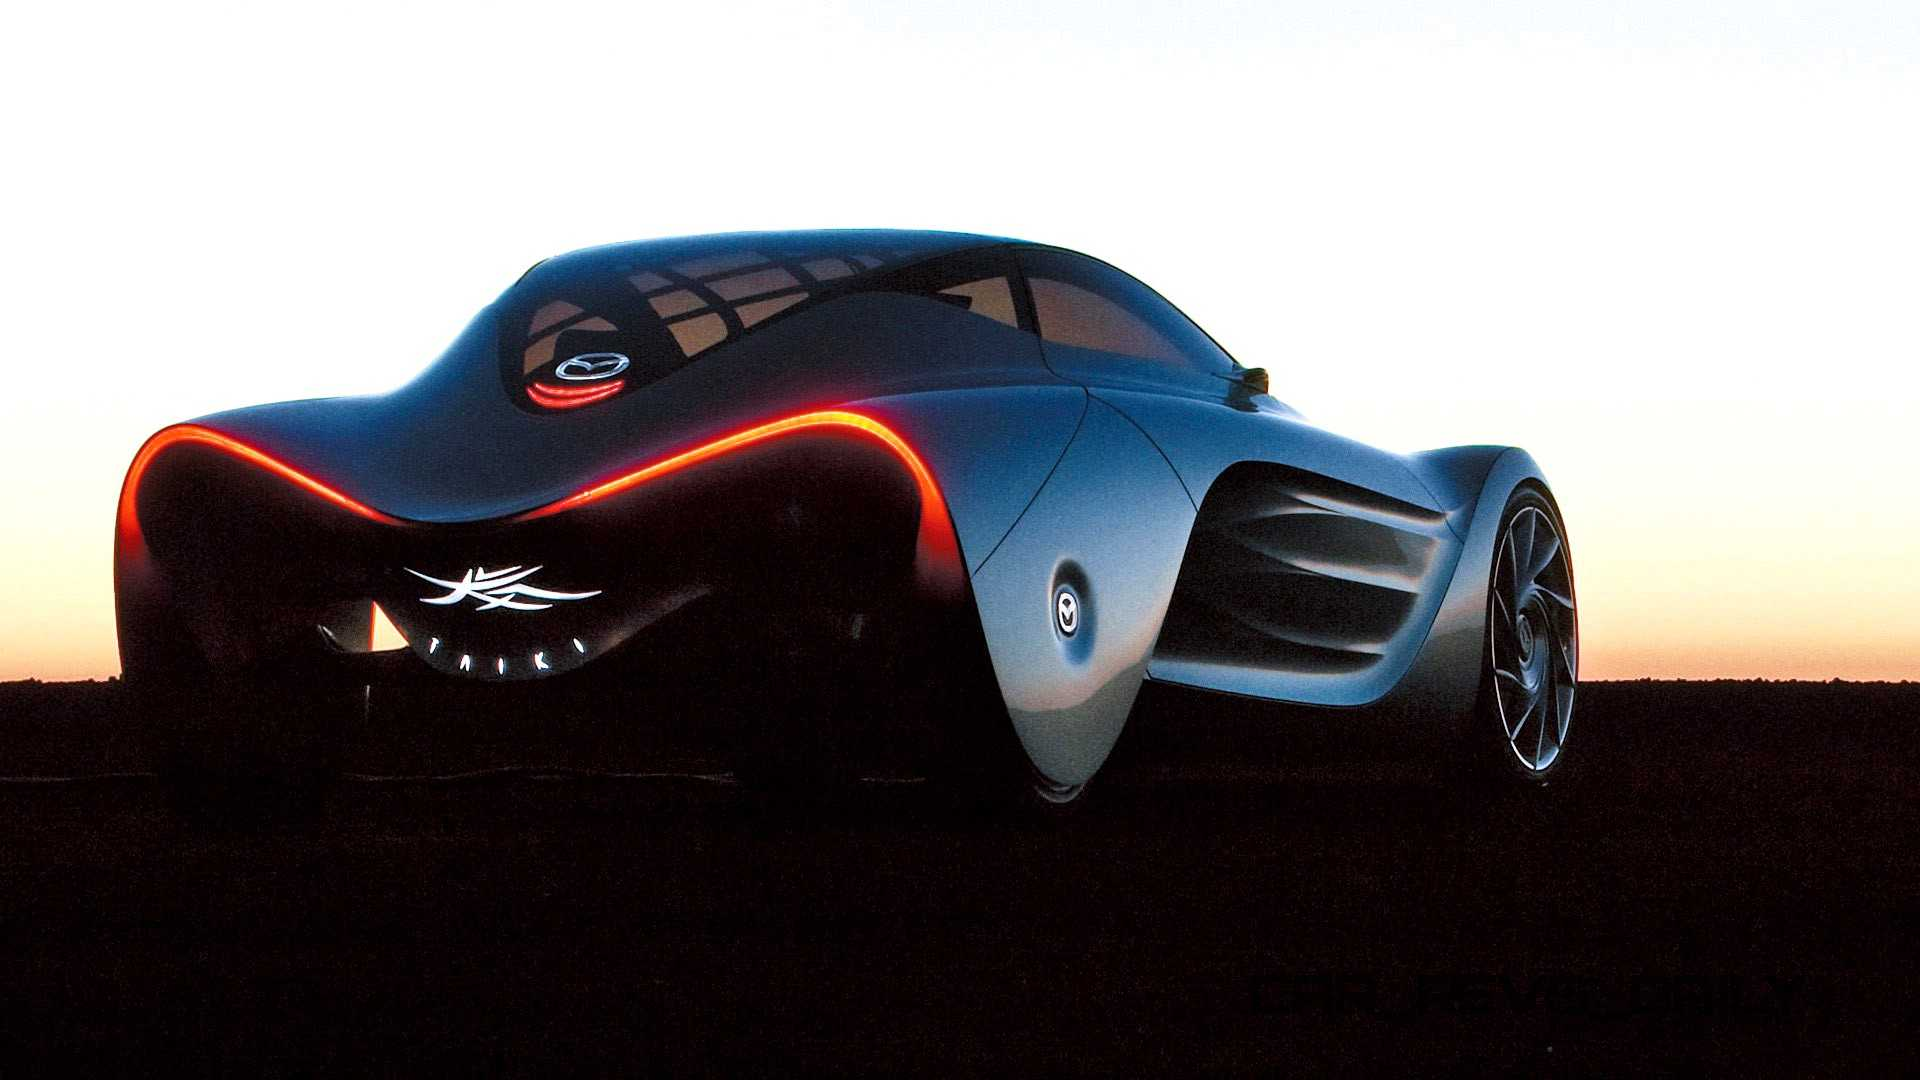 http://www.car-revs-daily.com/wp-content/uploads/2015/03/2007-Mazda-TAIKI-Concept-531.jpg